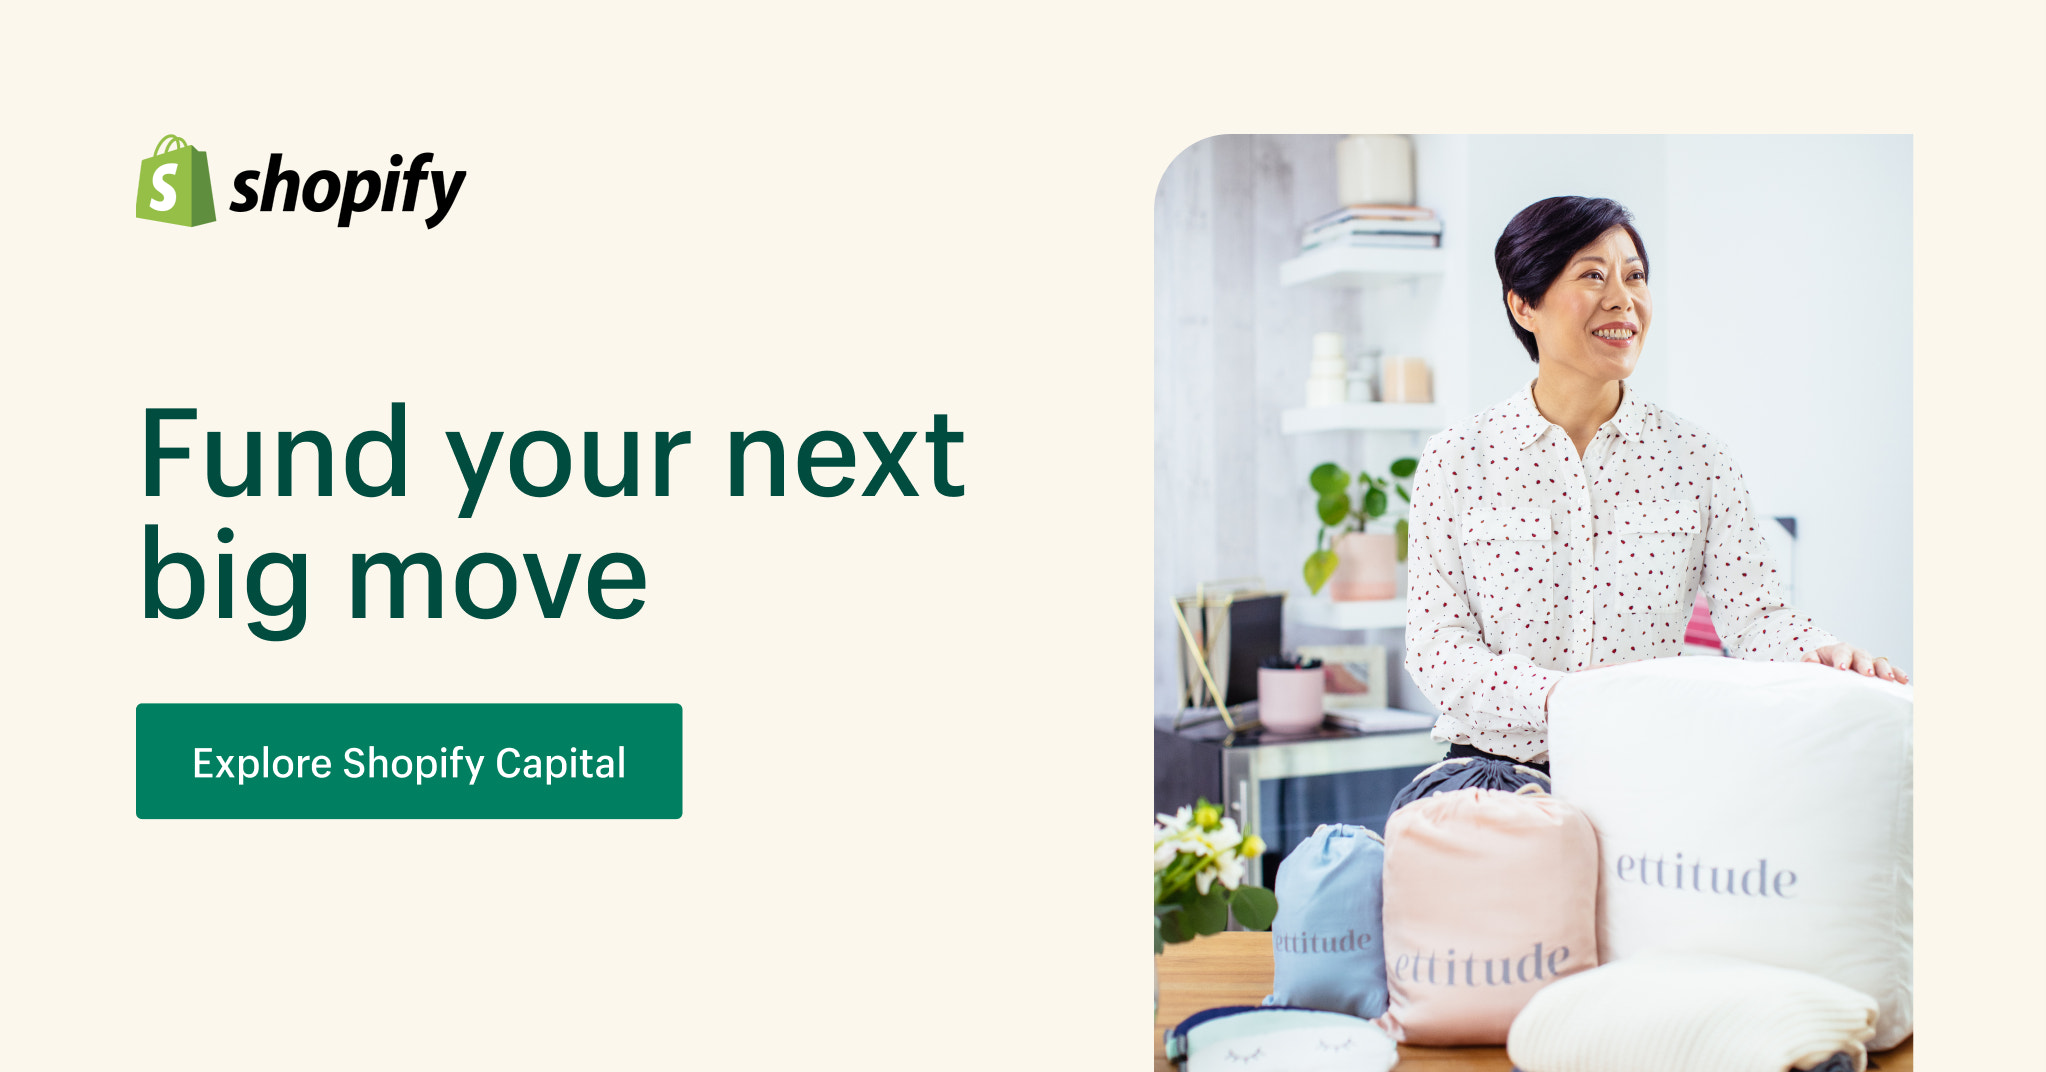 Ad for Shopify Capital. The text reads: